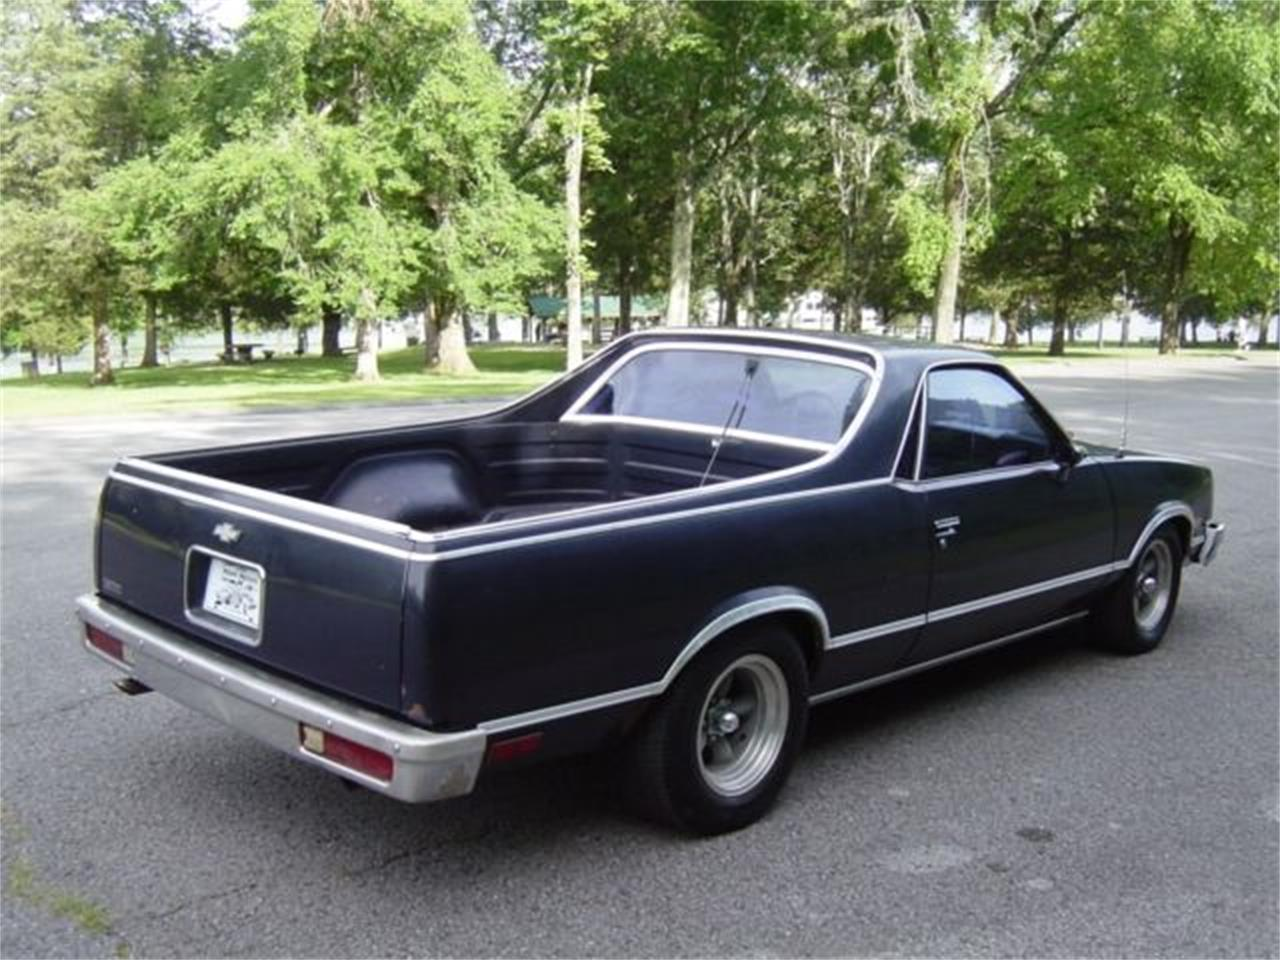 1983 Chevrolet El Camino (CC-1229965) for sale in Hendersonville, Tennessee